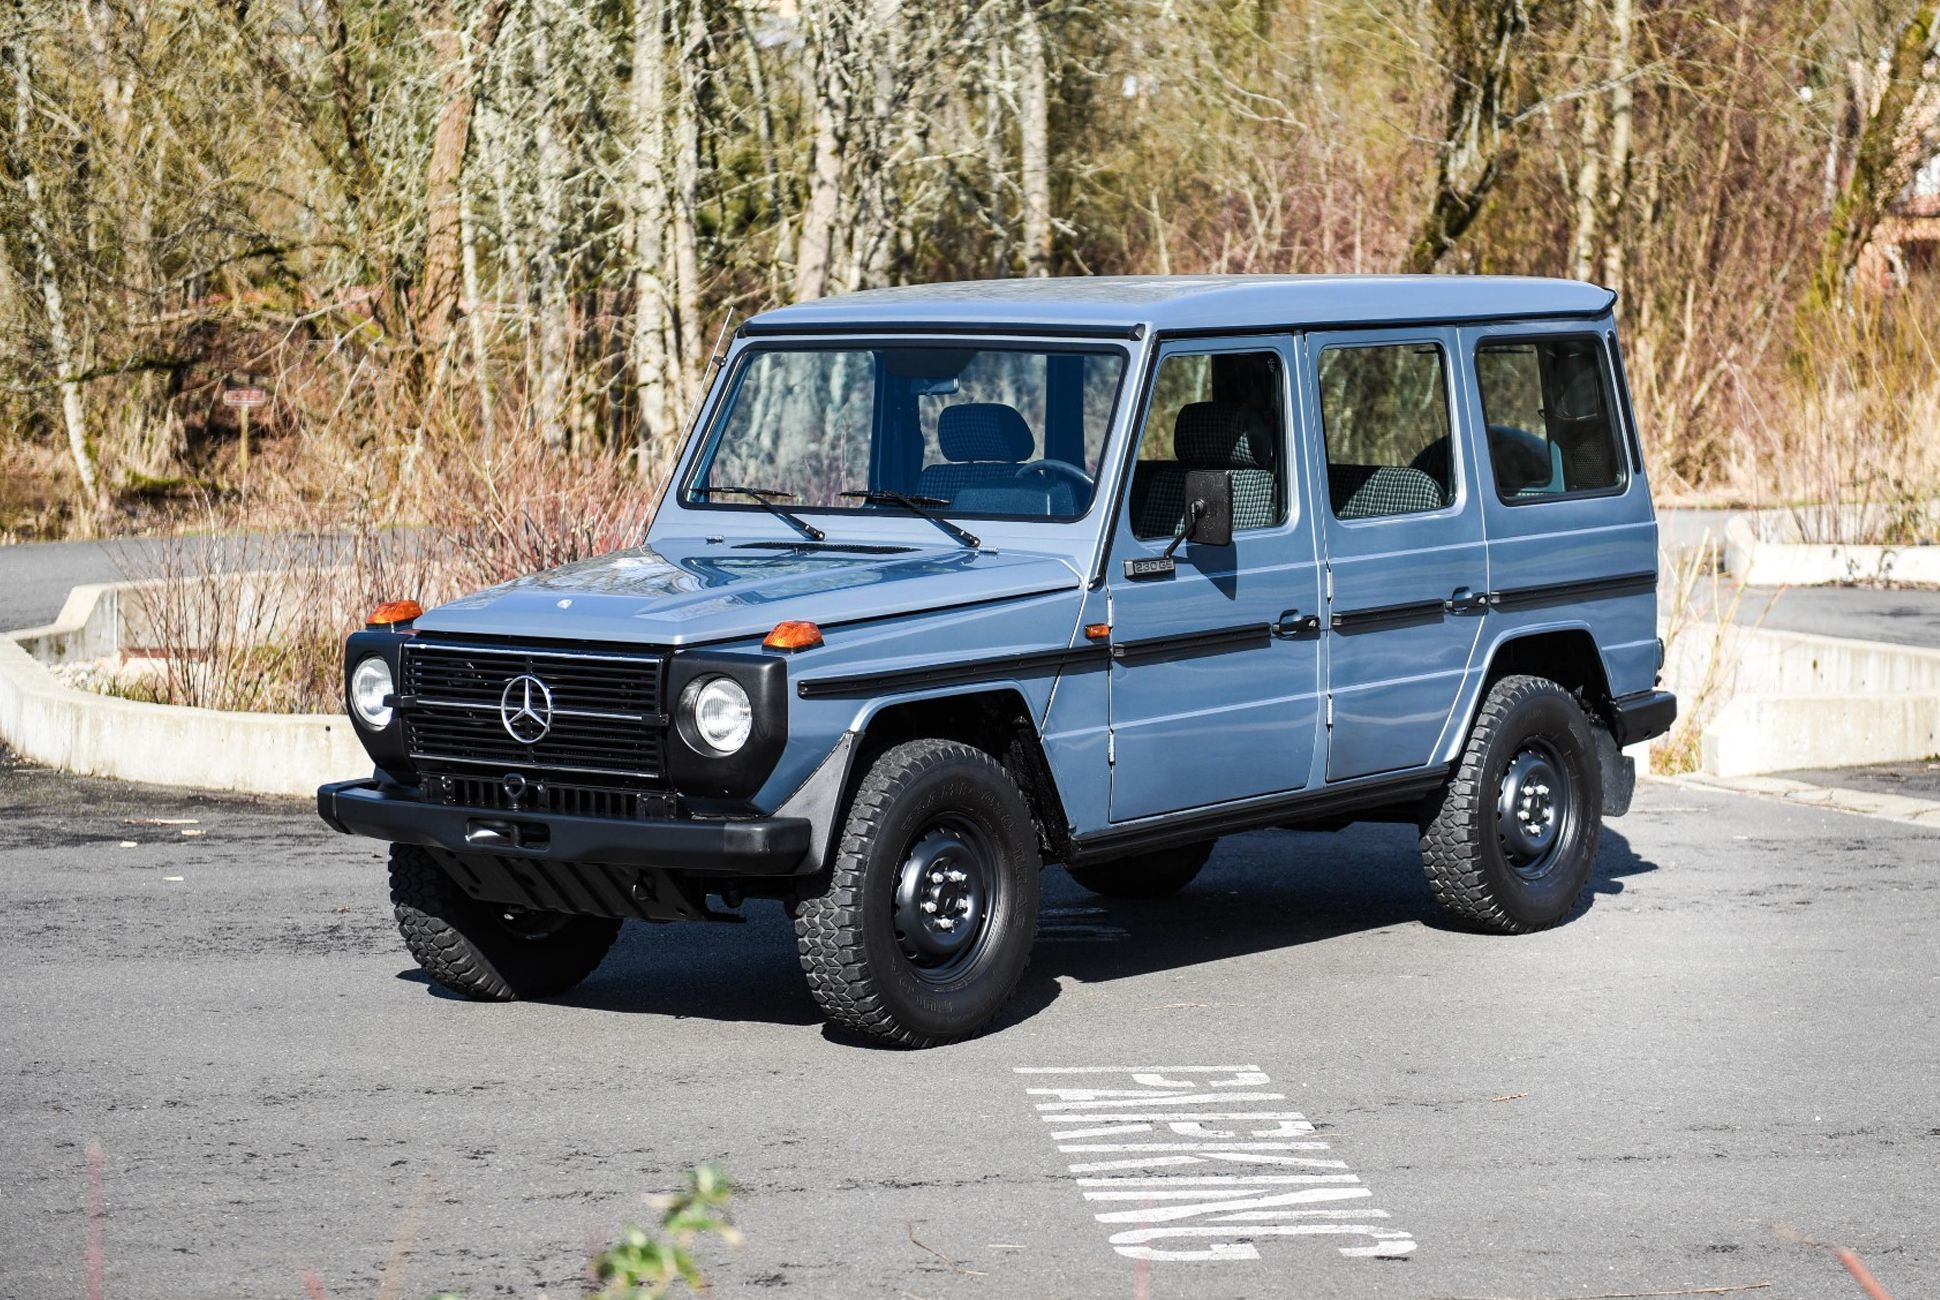 Mercedes benz 280 ge swb w460 1979 01 1990 pictures to pin - 4x4